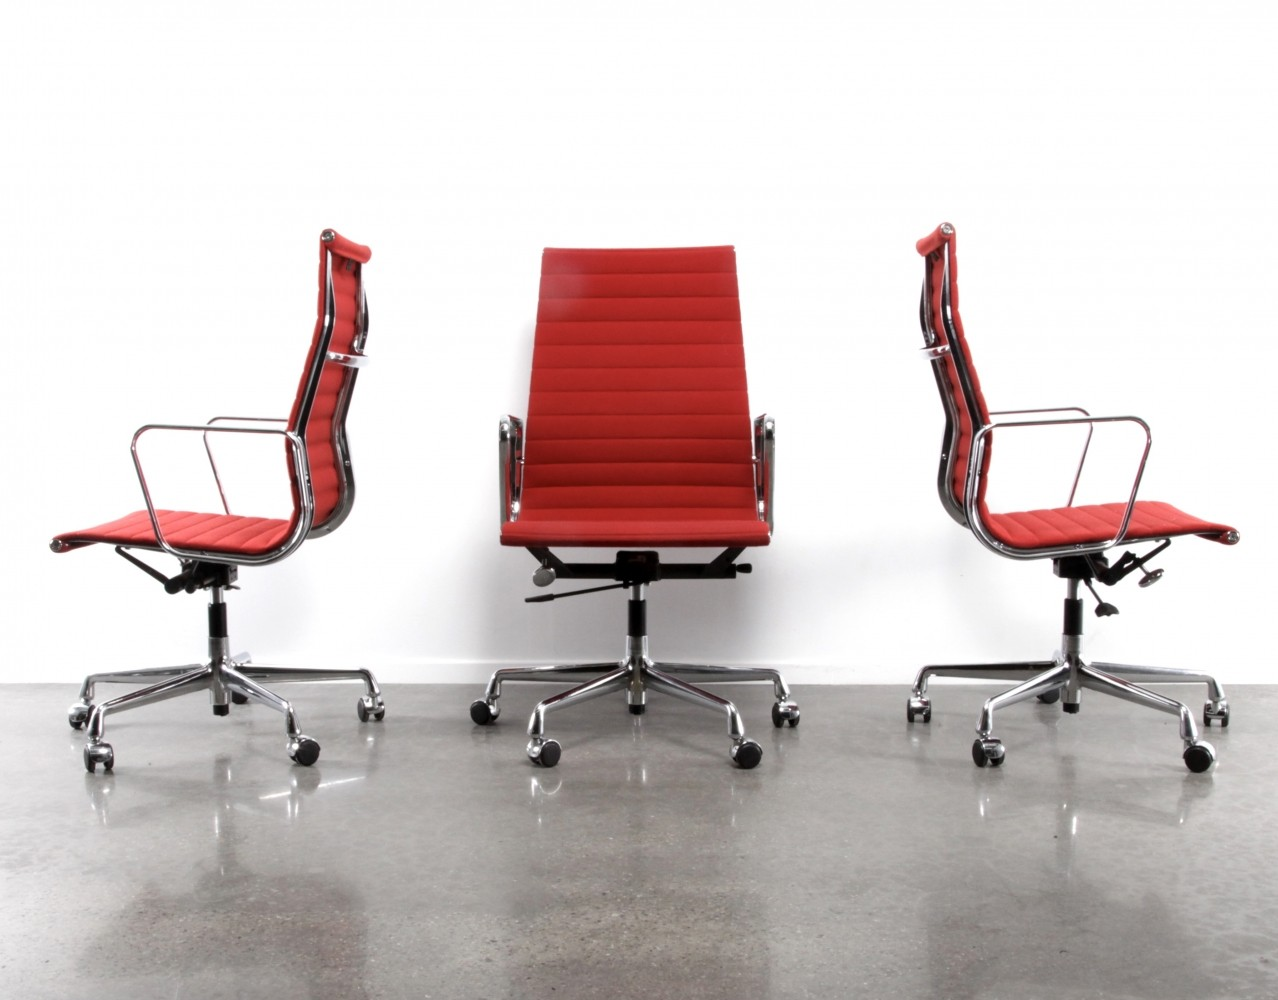 3 x EA119 Alugroup office chair by Charles & Ray Eames for Vitra